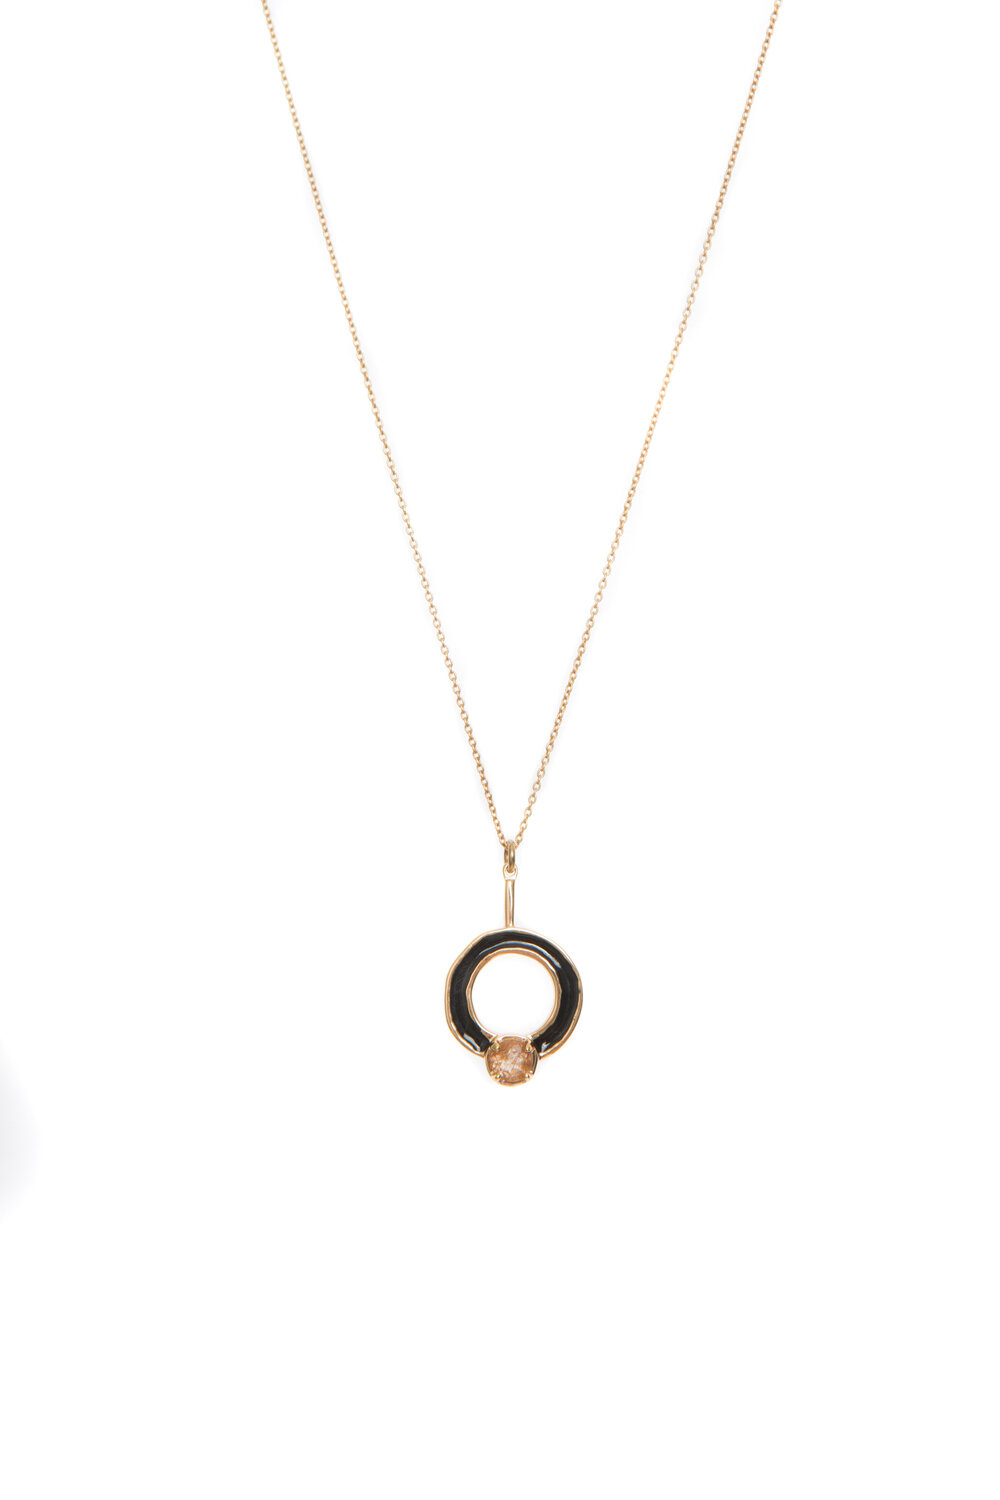 Hailey Gerrits Cronus Necklace- Copper Rutilated Quartz